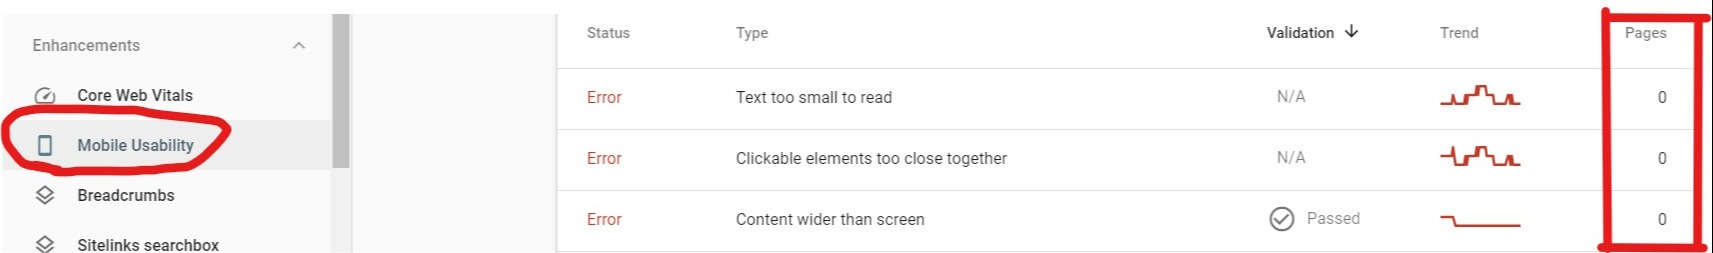 mobile usability report in google search console